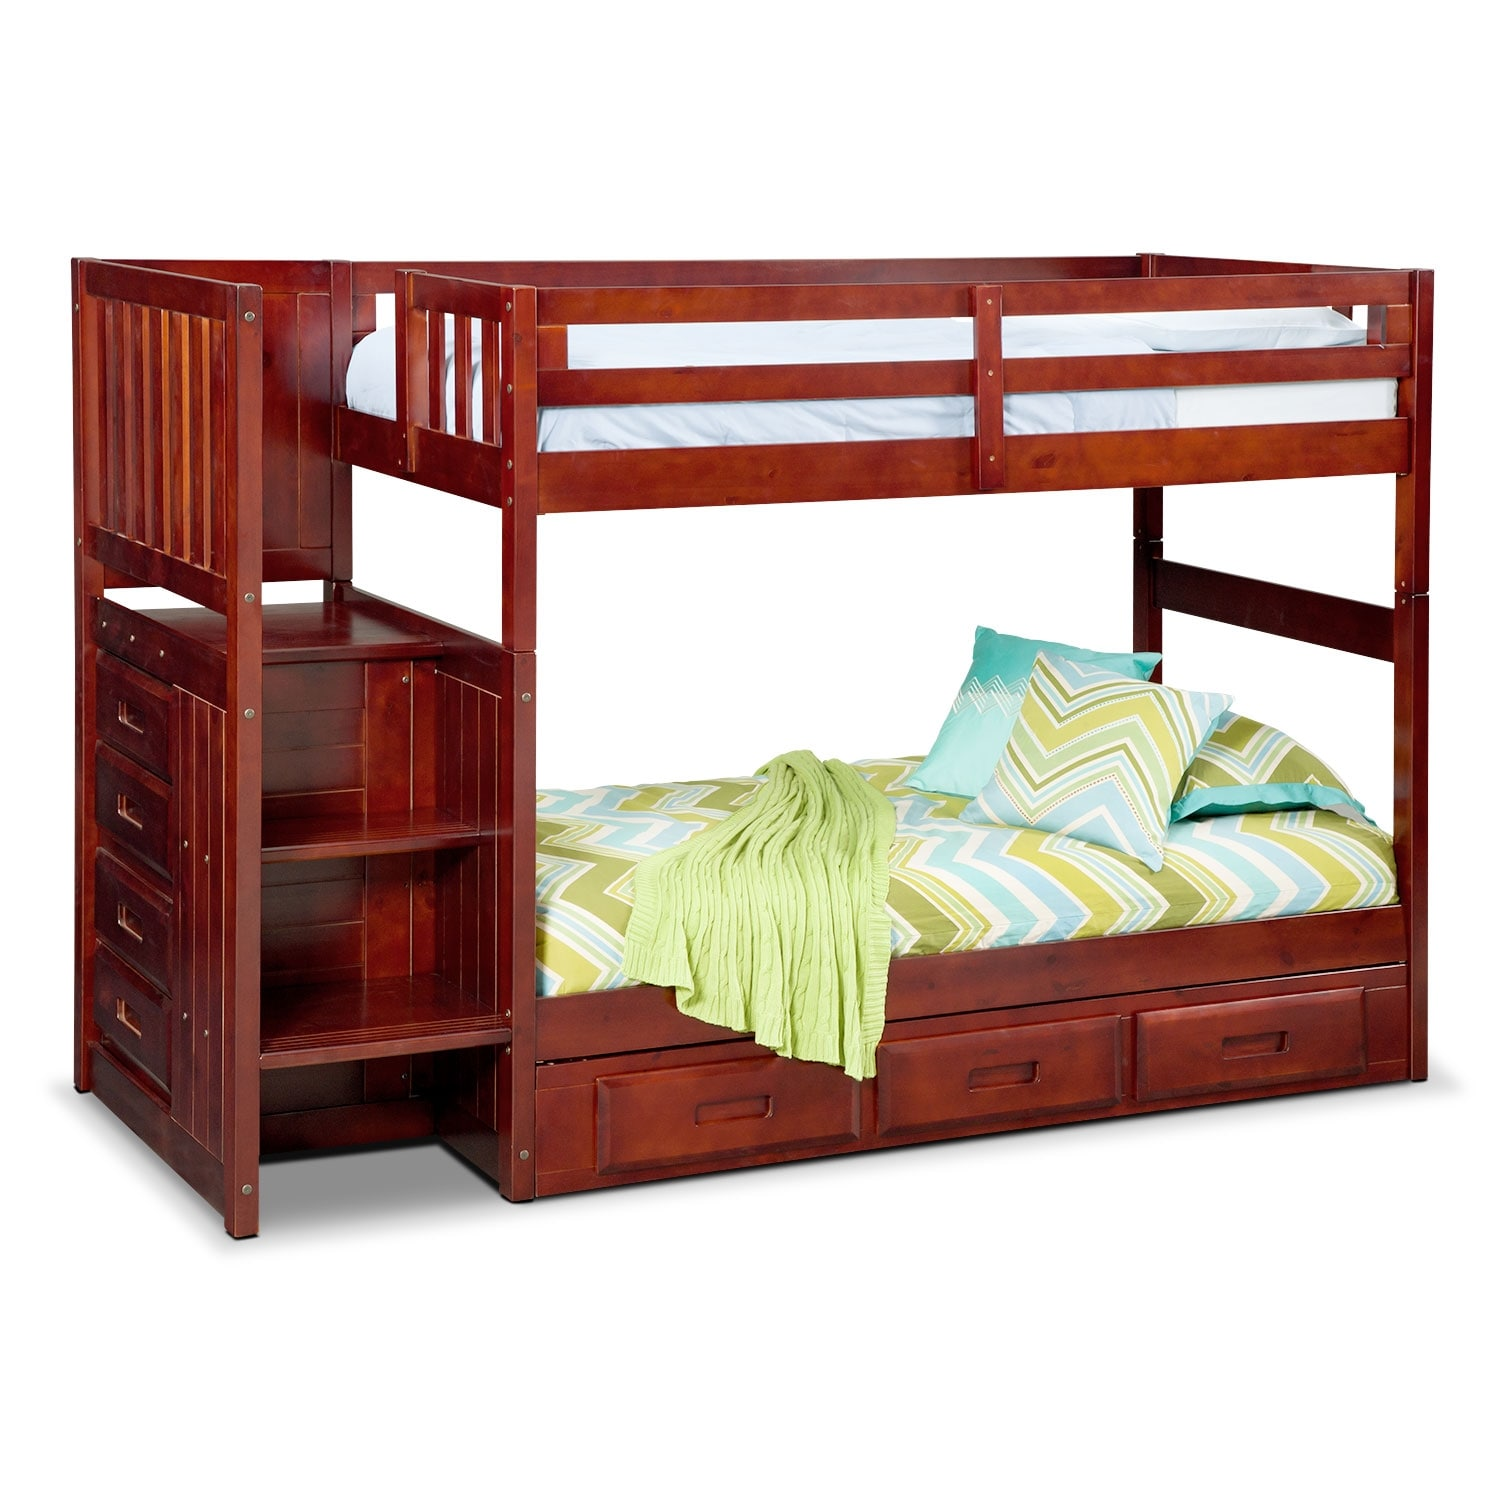 Ranger twin over twin bunk bed with storage stairs for Kids twin bed with drawers